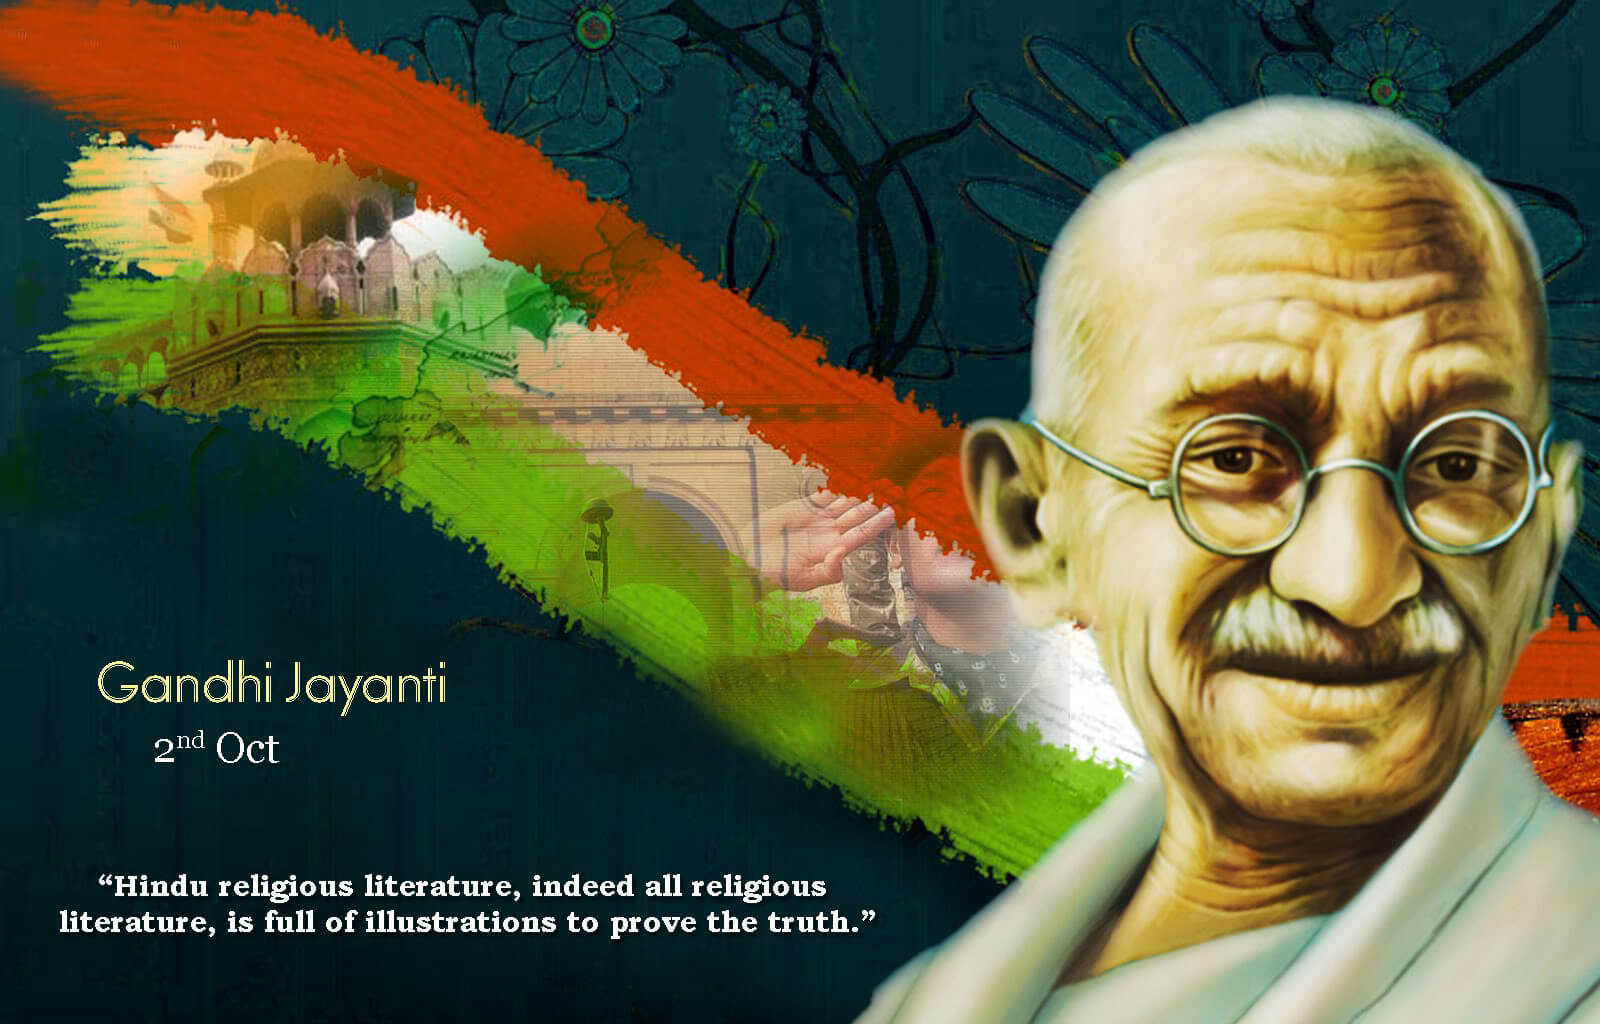 happy gandhi jayanti art new hd wallpaper